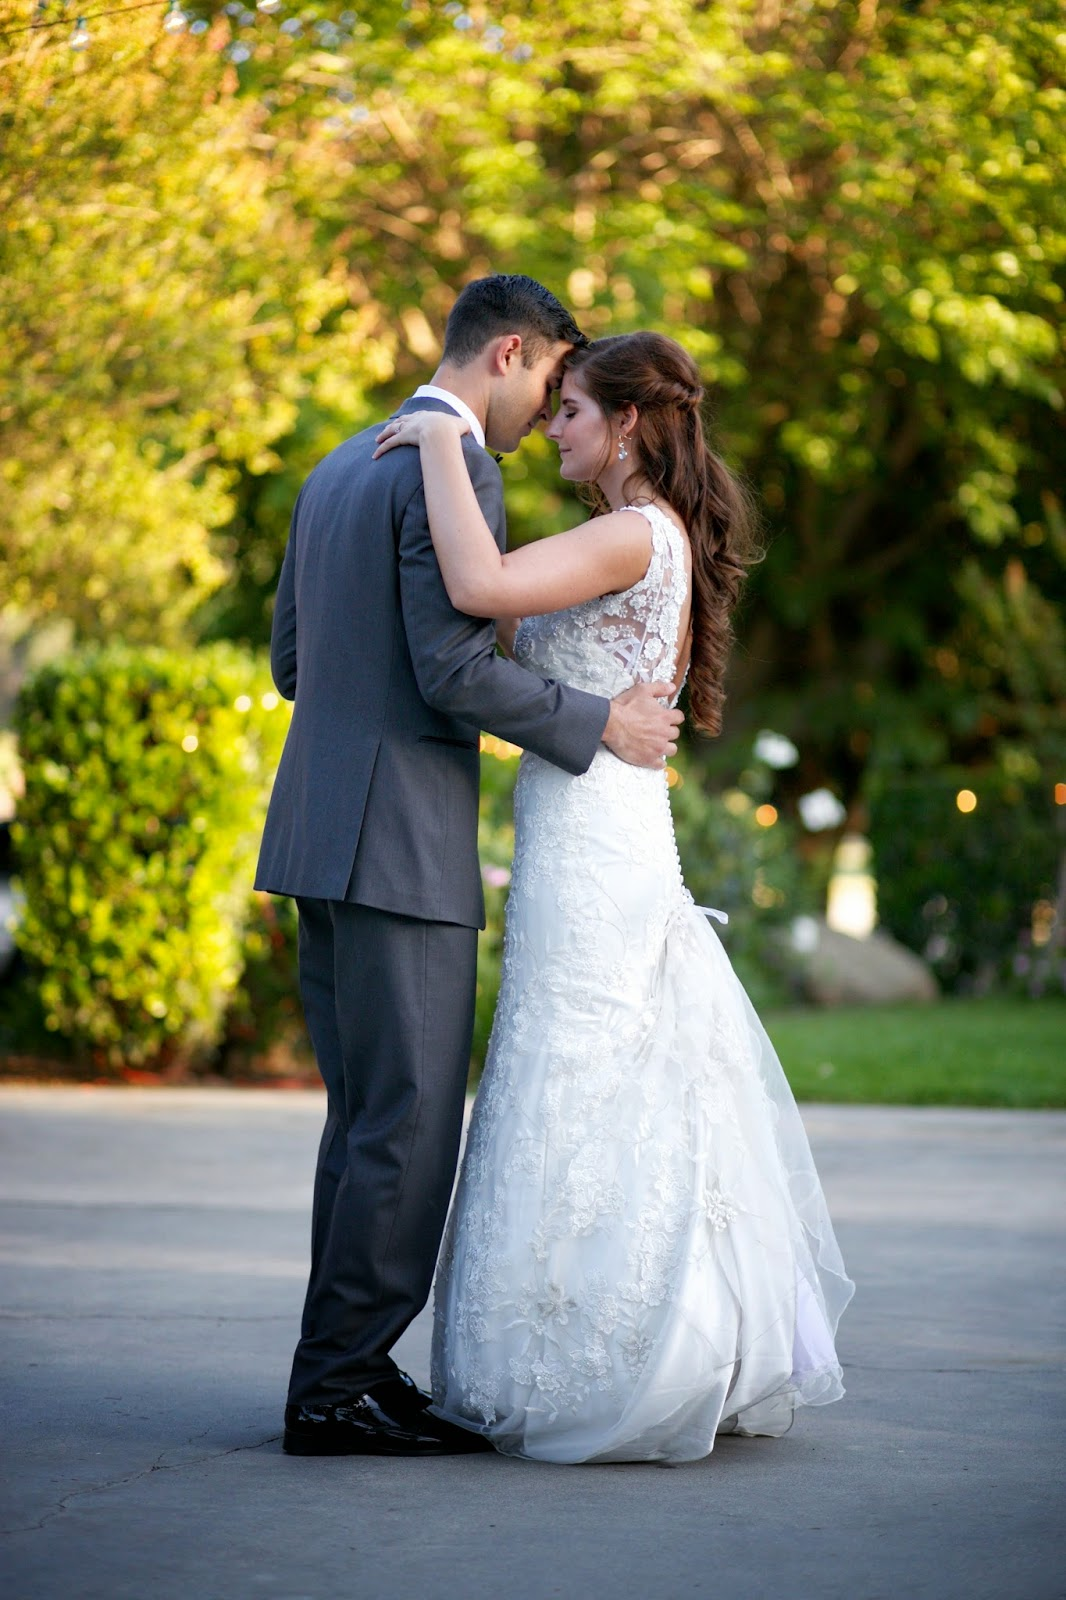 romantic first dance photo